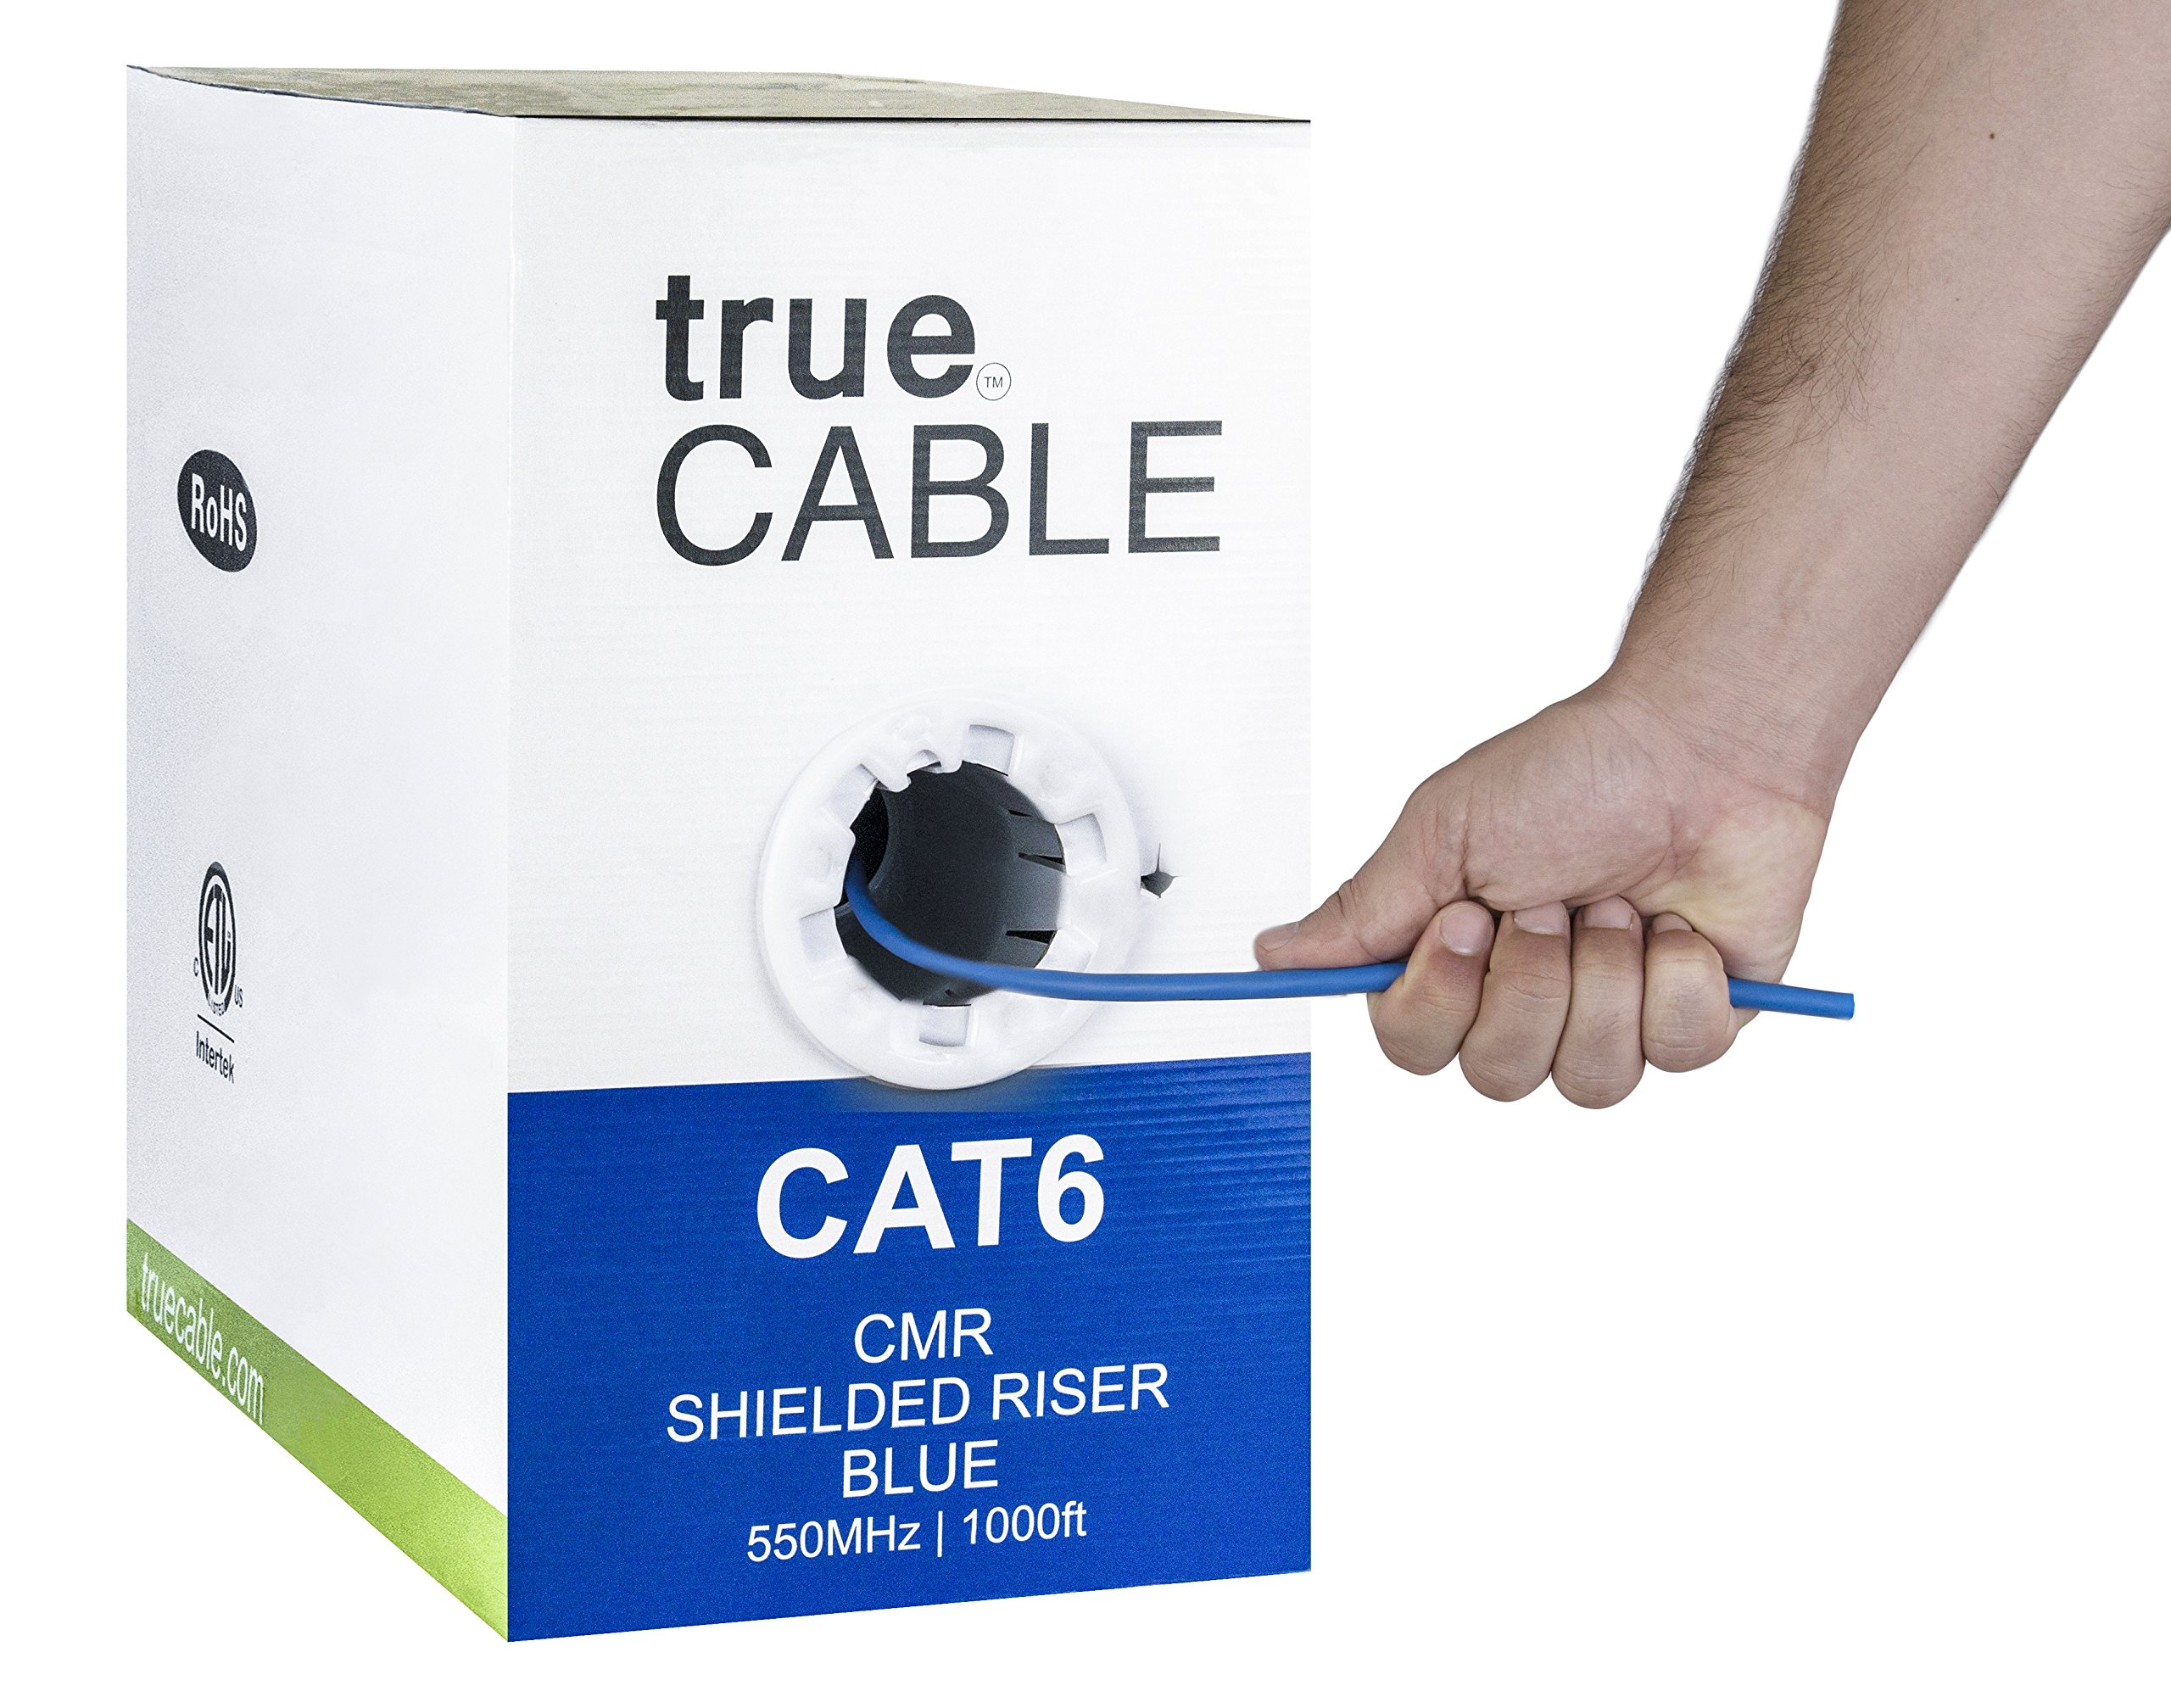 Cat6 Shielded Riser (CMR), 1000ft, Blue, Solid Bare Copper Bulk Ethernet Cable, 550MHz, ETL Listed, 23AWG, Overall Foil Shield (FTP), trueCABLE